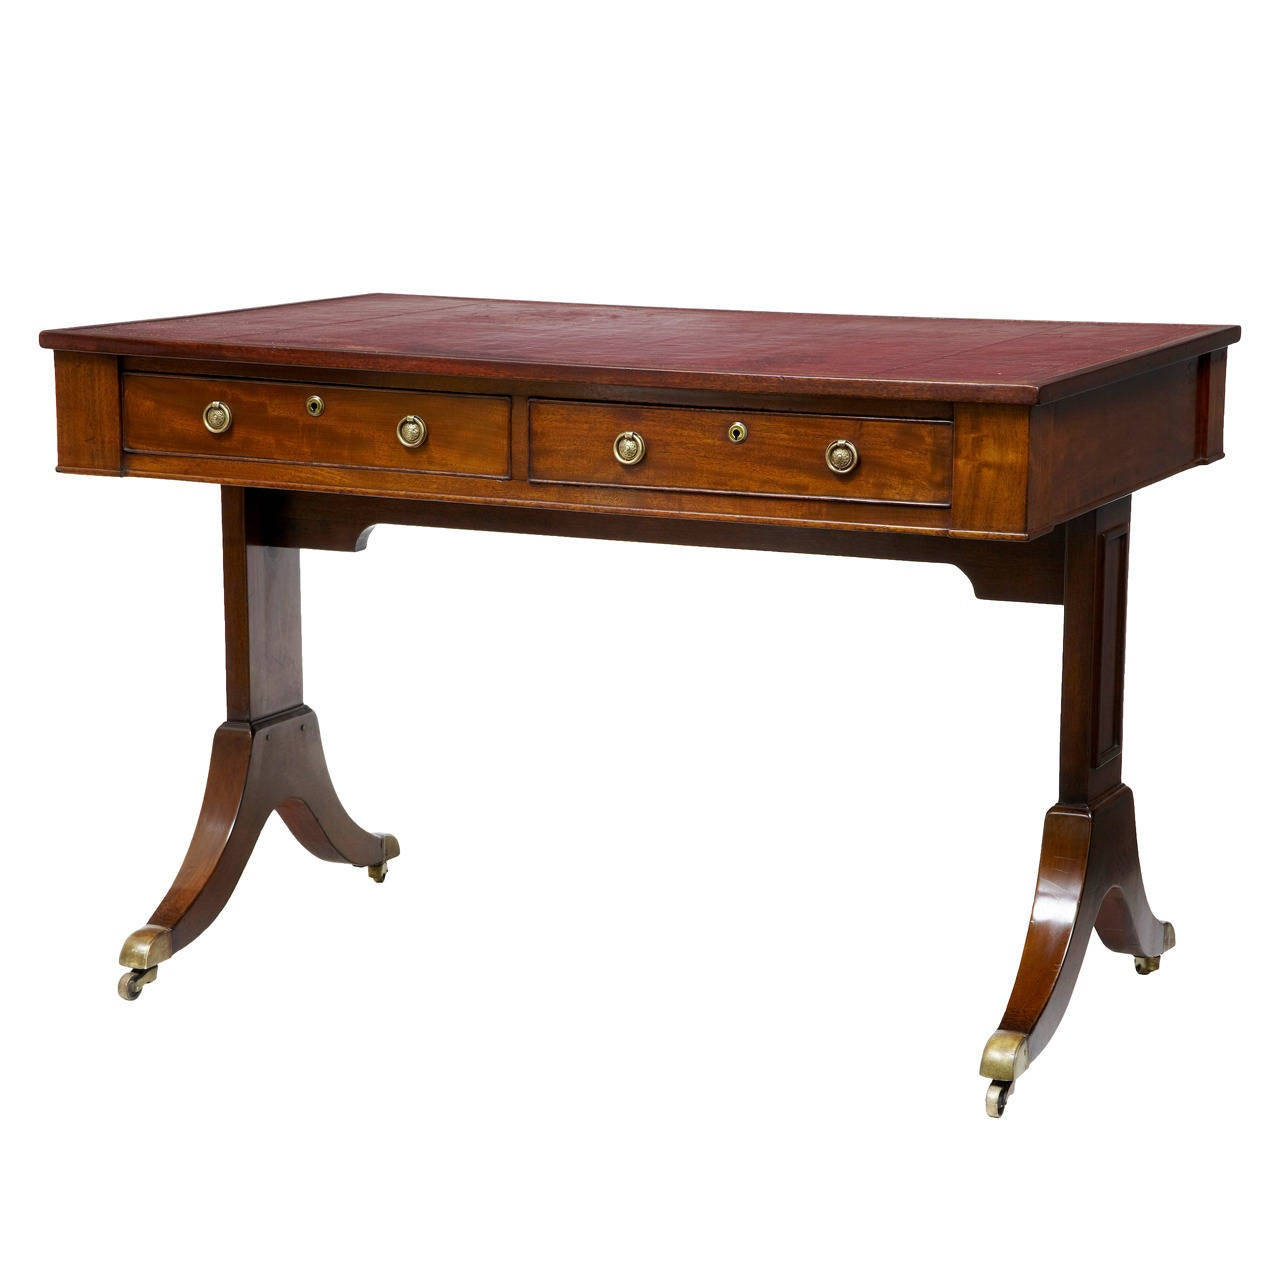 #733B1A 19th Century And Later Mahogany Writing Desk Table For Sale At 1stdibs with 1280x1280 px of Brand New Mahogany Writing Table 12801280 pic @ avoidforclosure.info